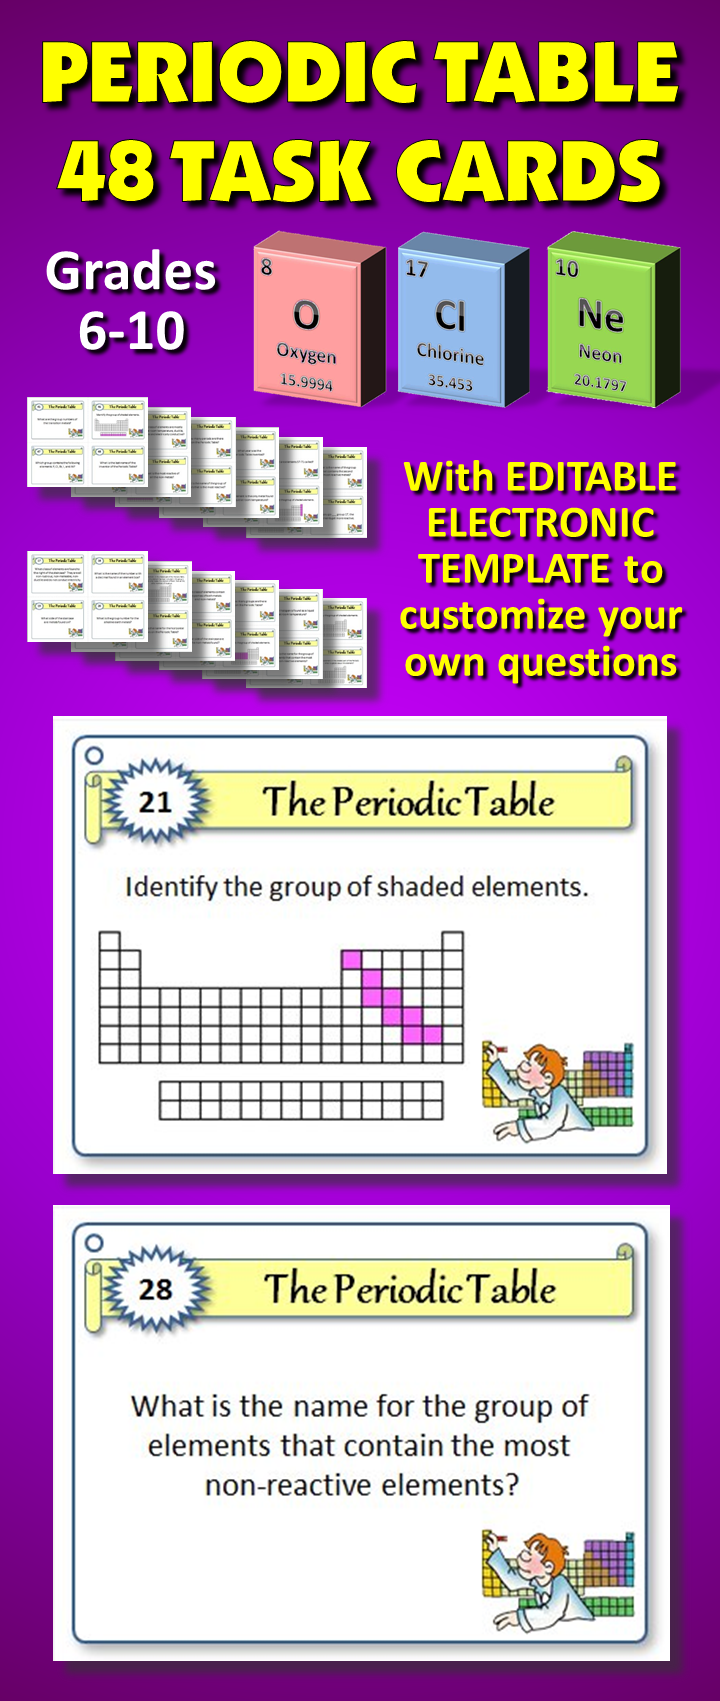 Periodic table task cards with editable template early 48 periodic table task cards with editable electronic template to customize your own questions helps gamestrikefo Gallery